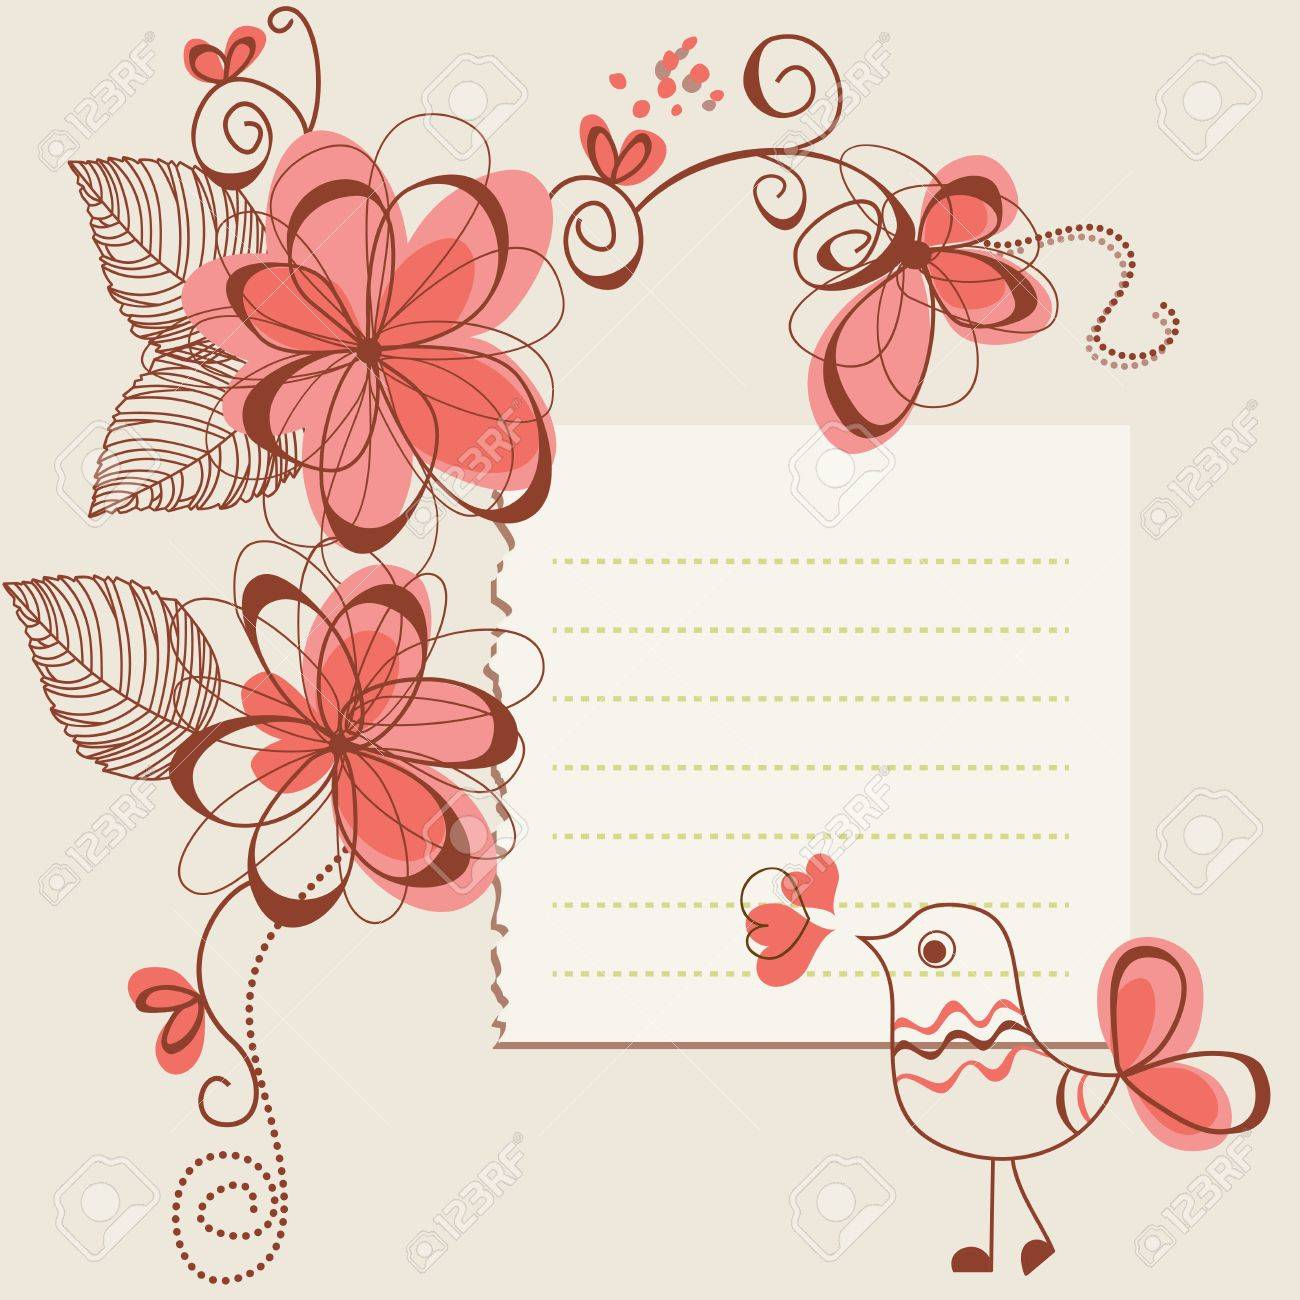 Flowers and bird romantic card Stock Vector - 10774960